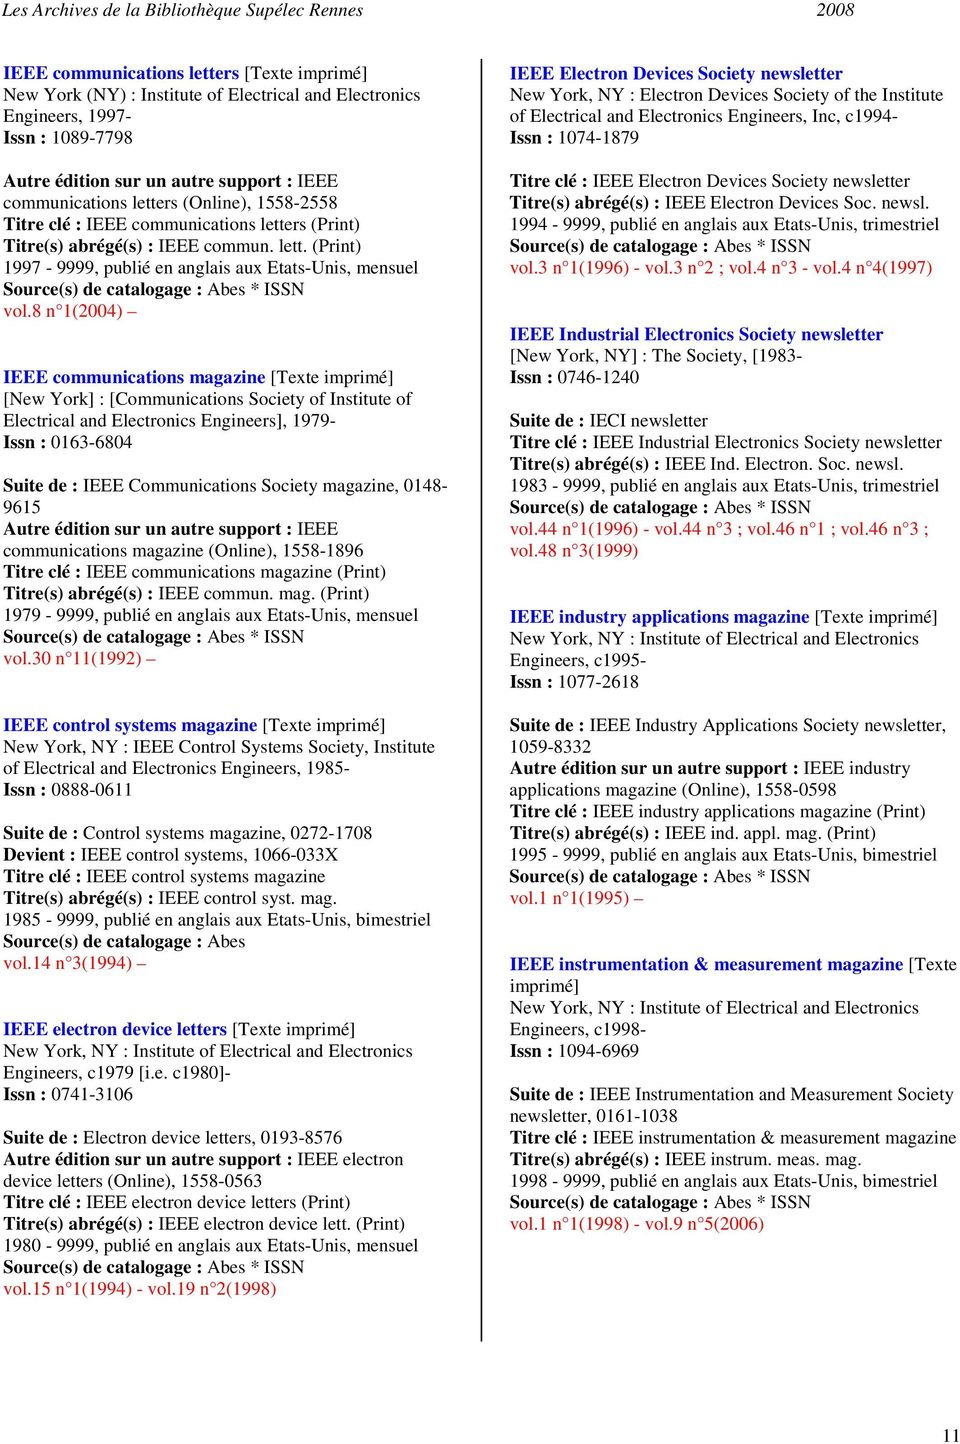 8 n 1(2004) IEEE communications magazine [Texte [New York] : [Communications Society of Institute of Electrical and Electronics Engineers], 1979- Issn : 0163-6804 Suite de : IEEE Communications